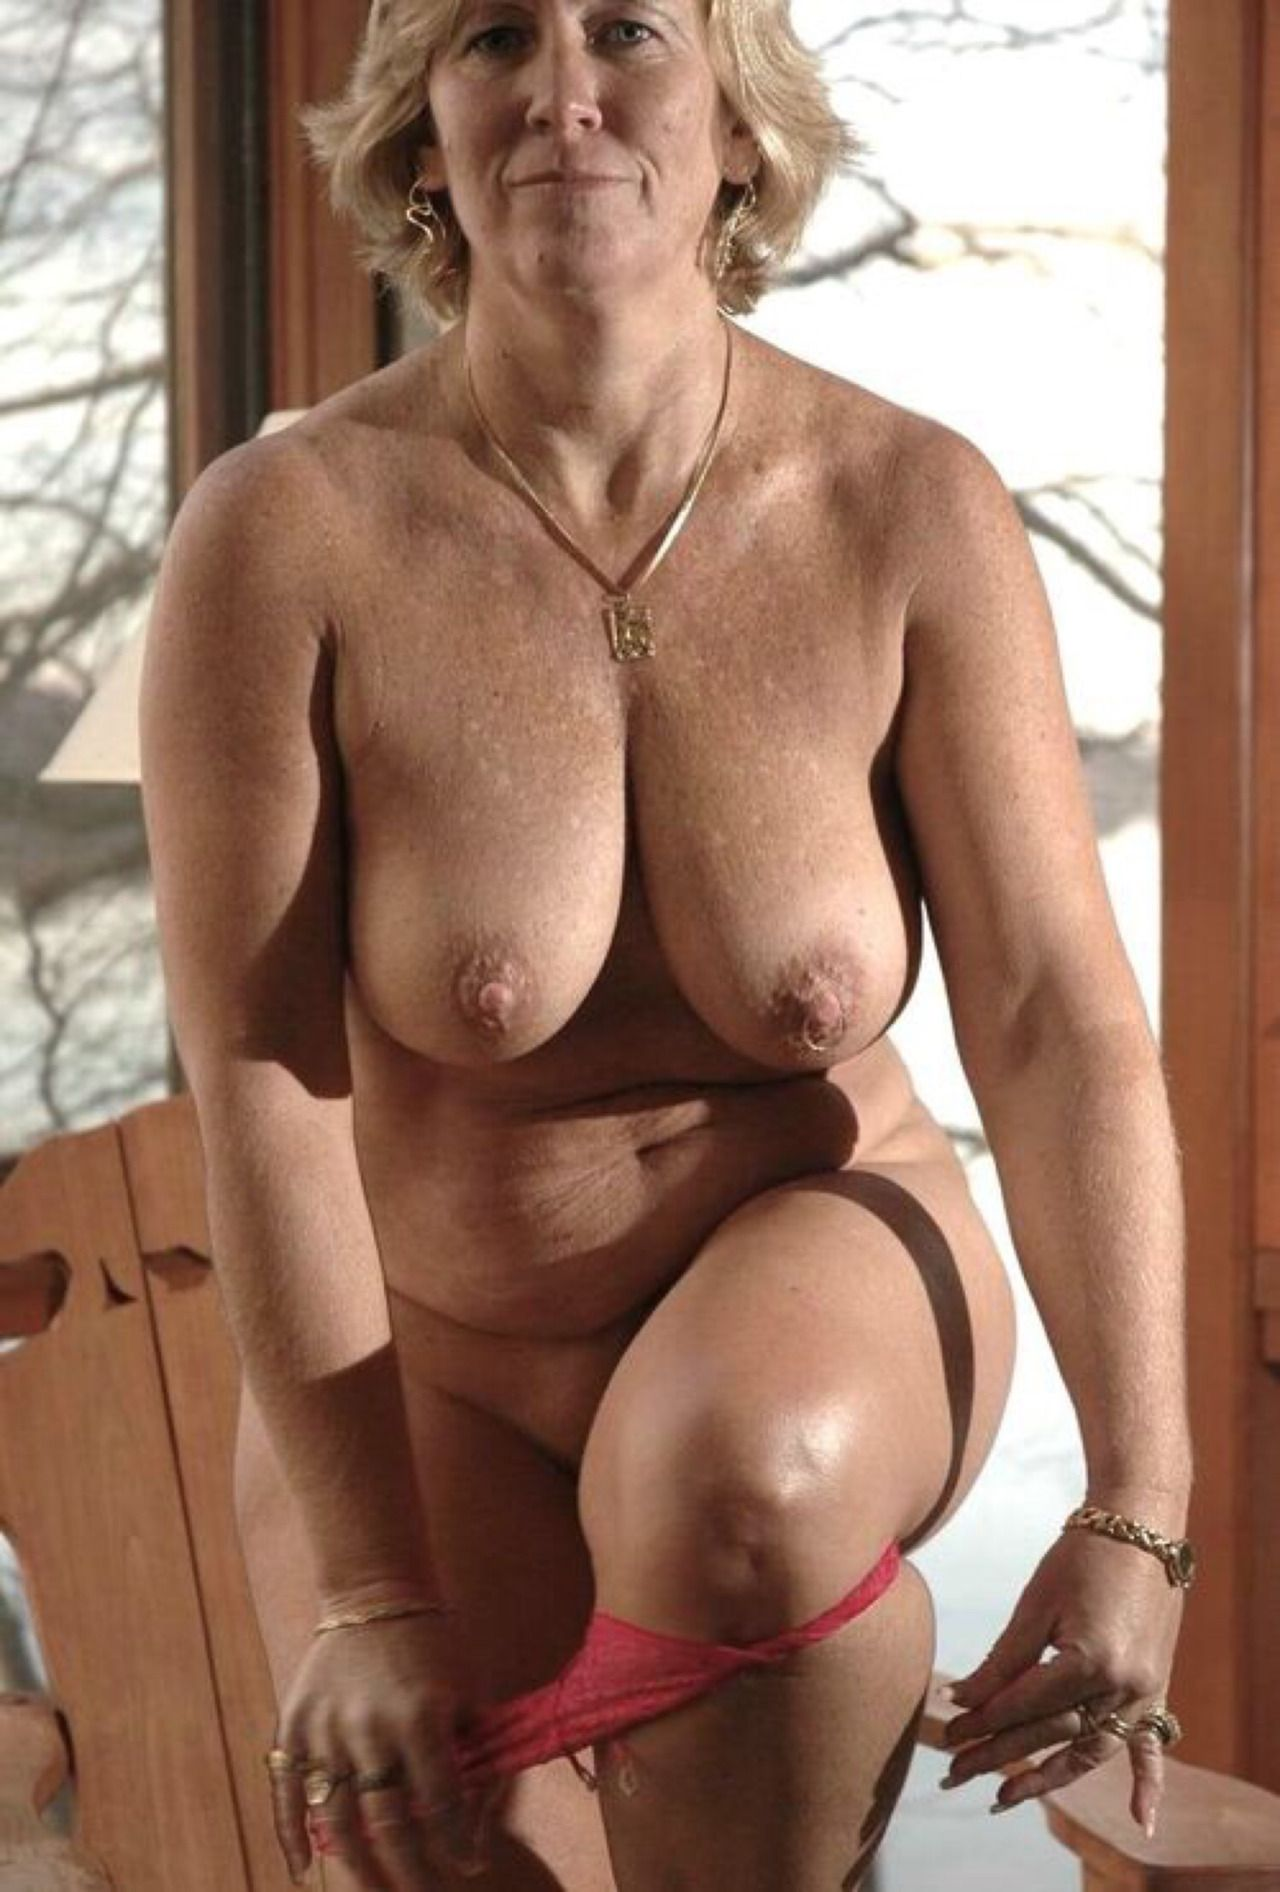 Milf god milf amature tube creamy free and